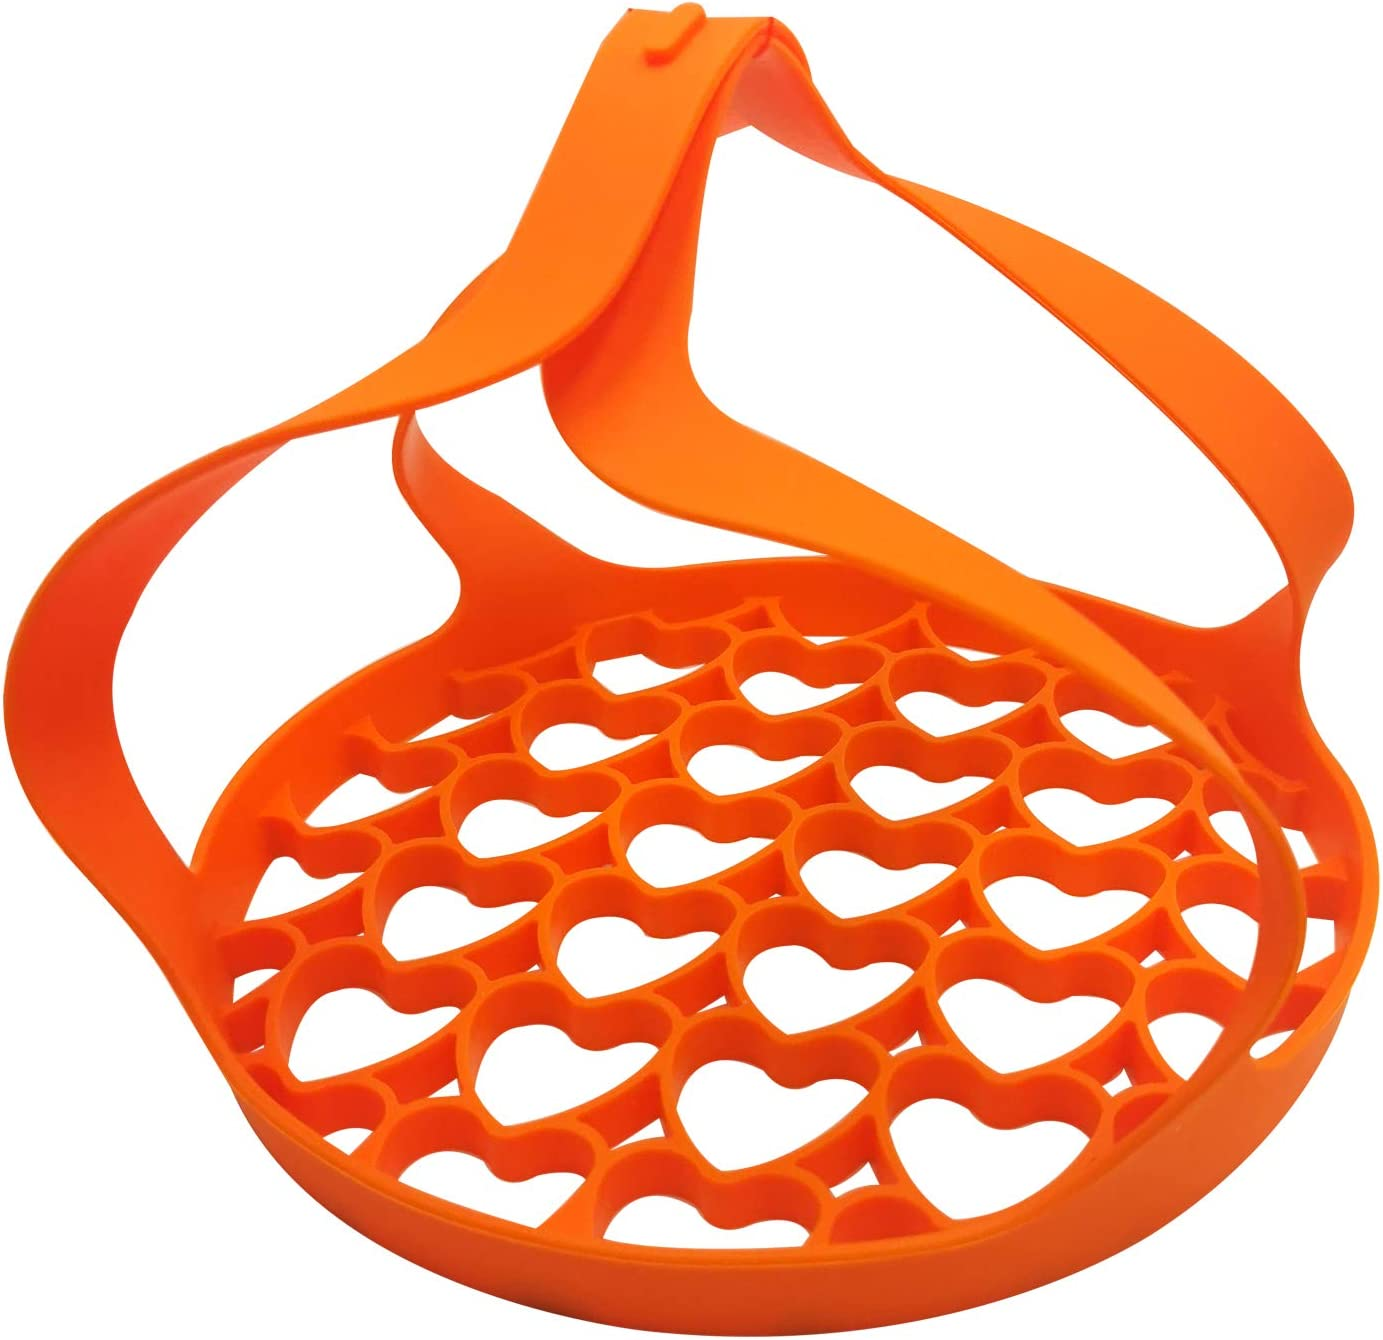 Pressure Cooker Sling,Silicone Sling Lifter Accessories, Anti-scalding Bakeware Lifter Steamer Rack for 6 Qt/8 Qt Instant Pot, Ninja Foodi and Multi-function Cooker (Orange)